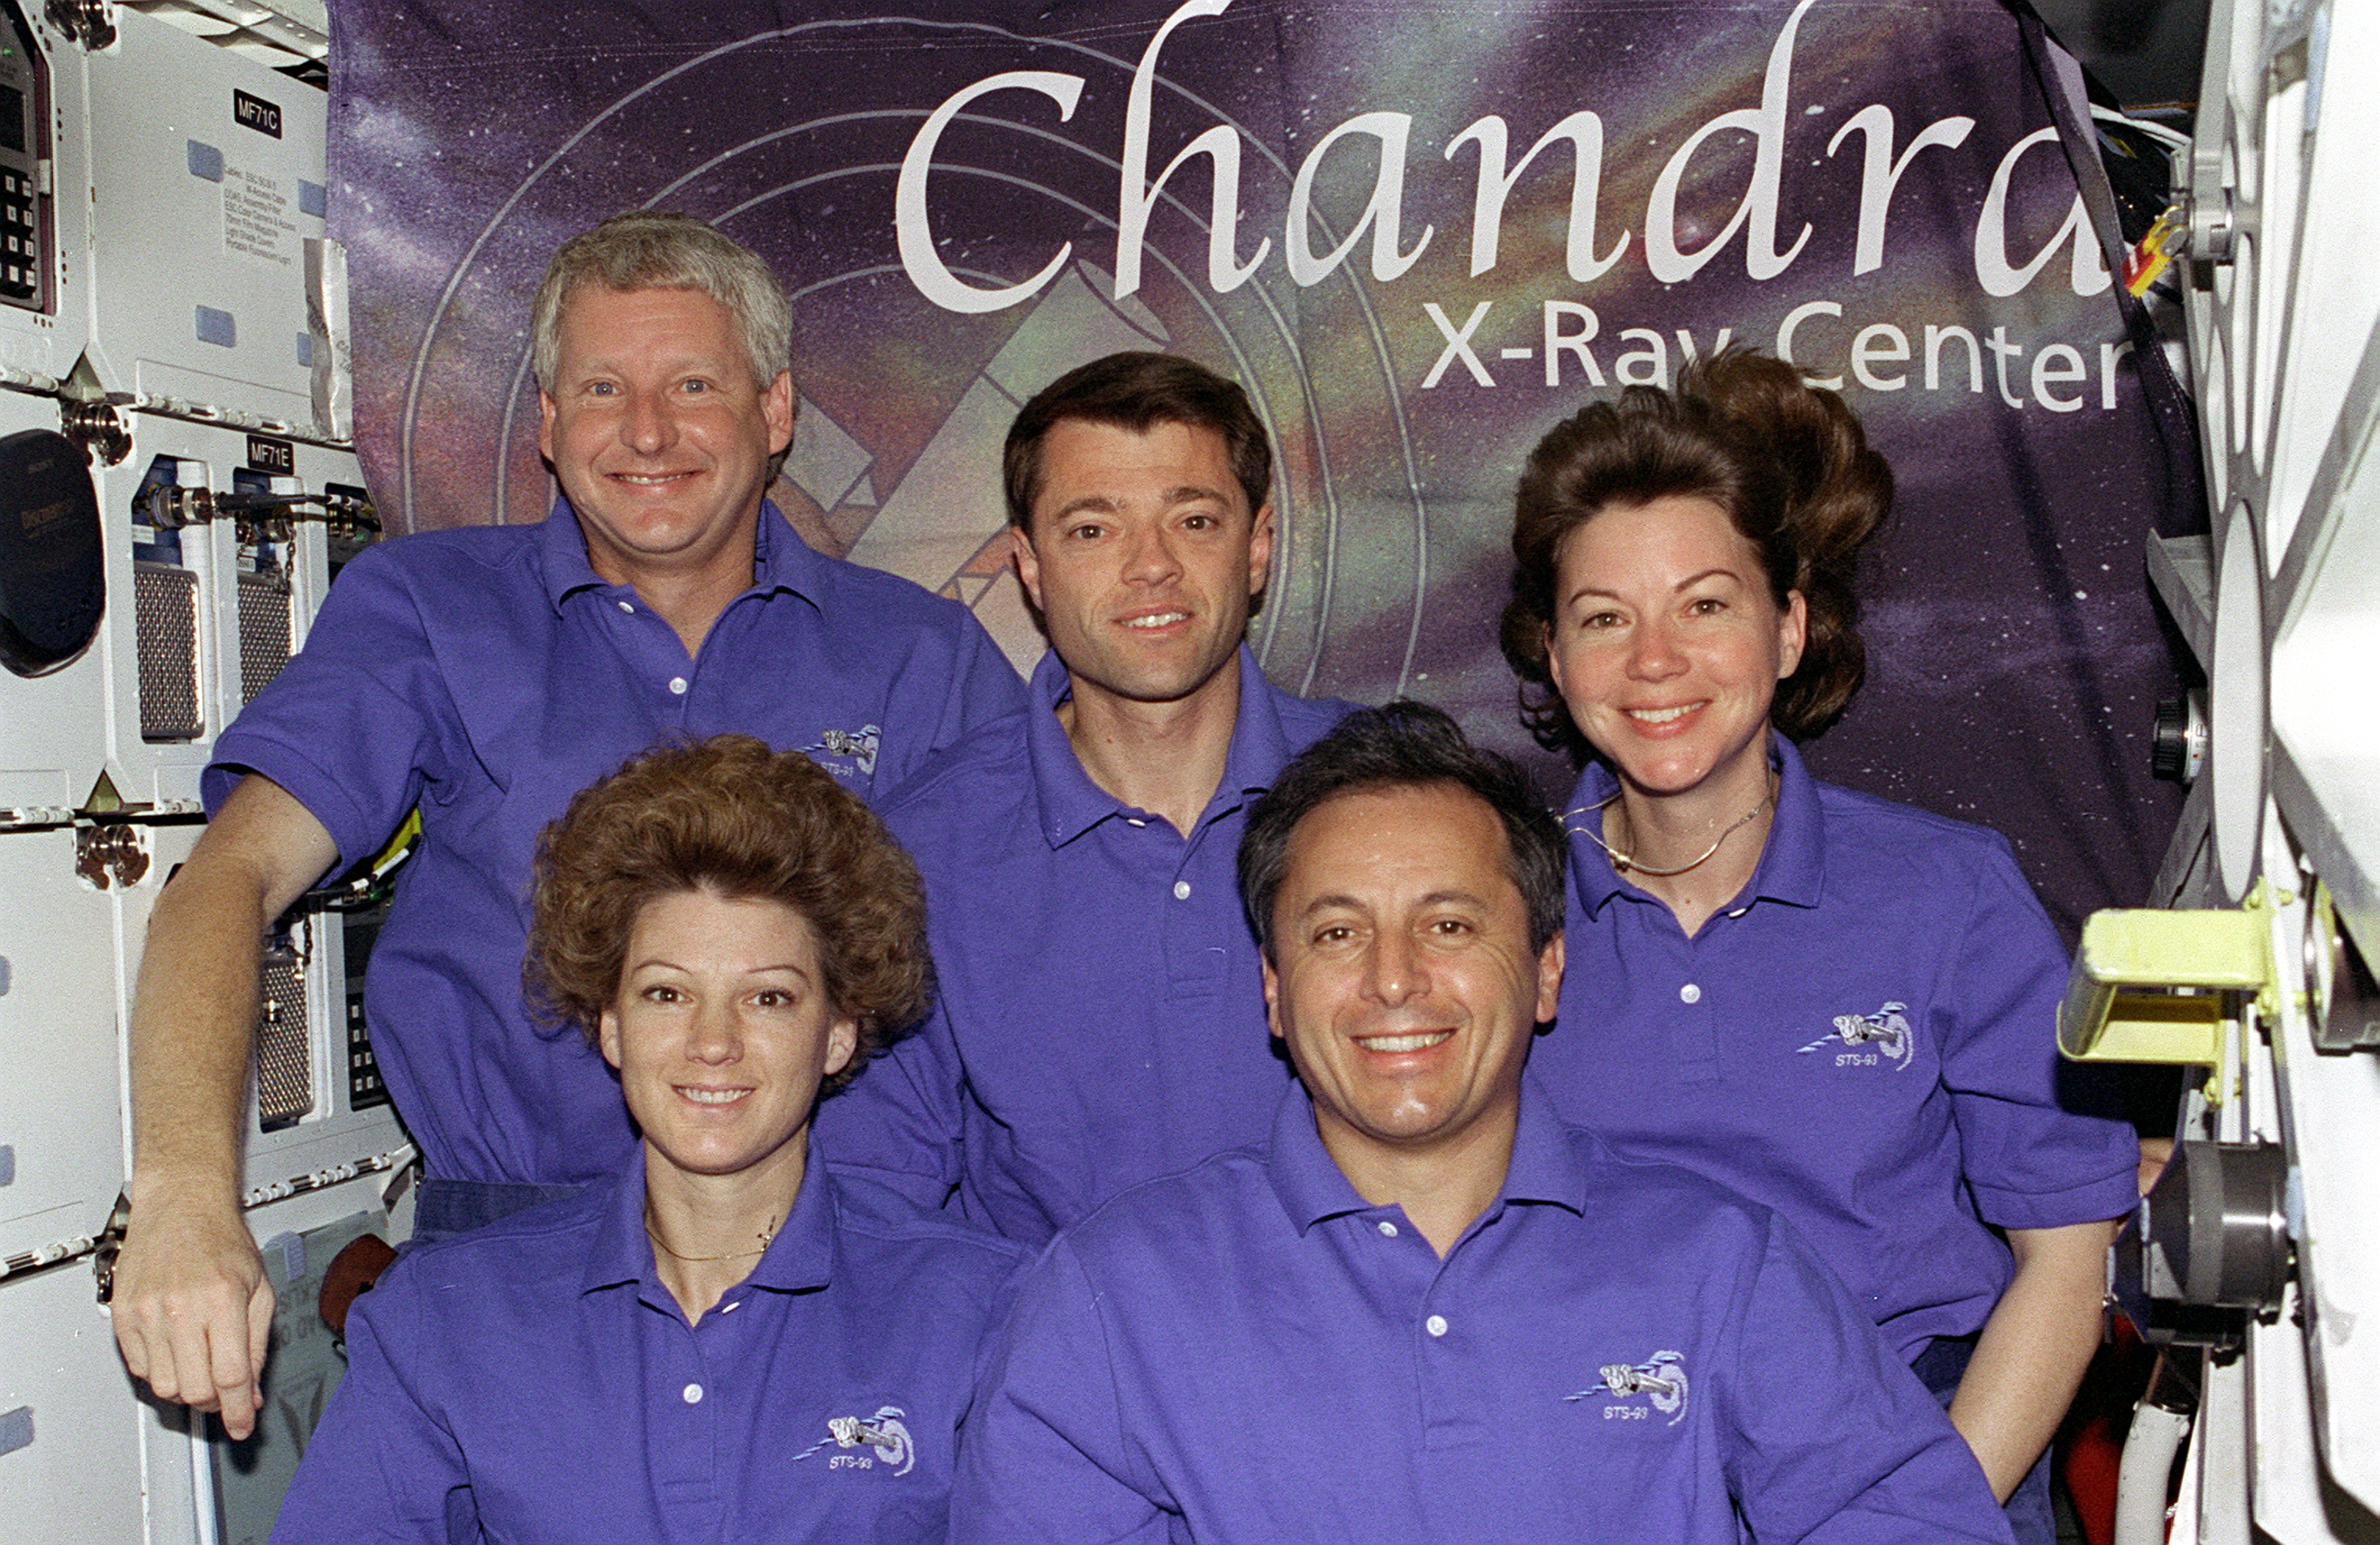 during chandra mission